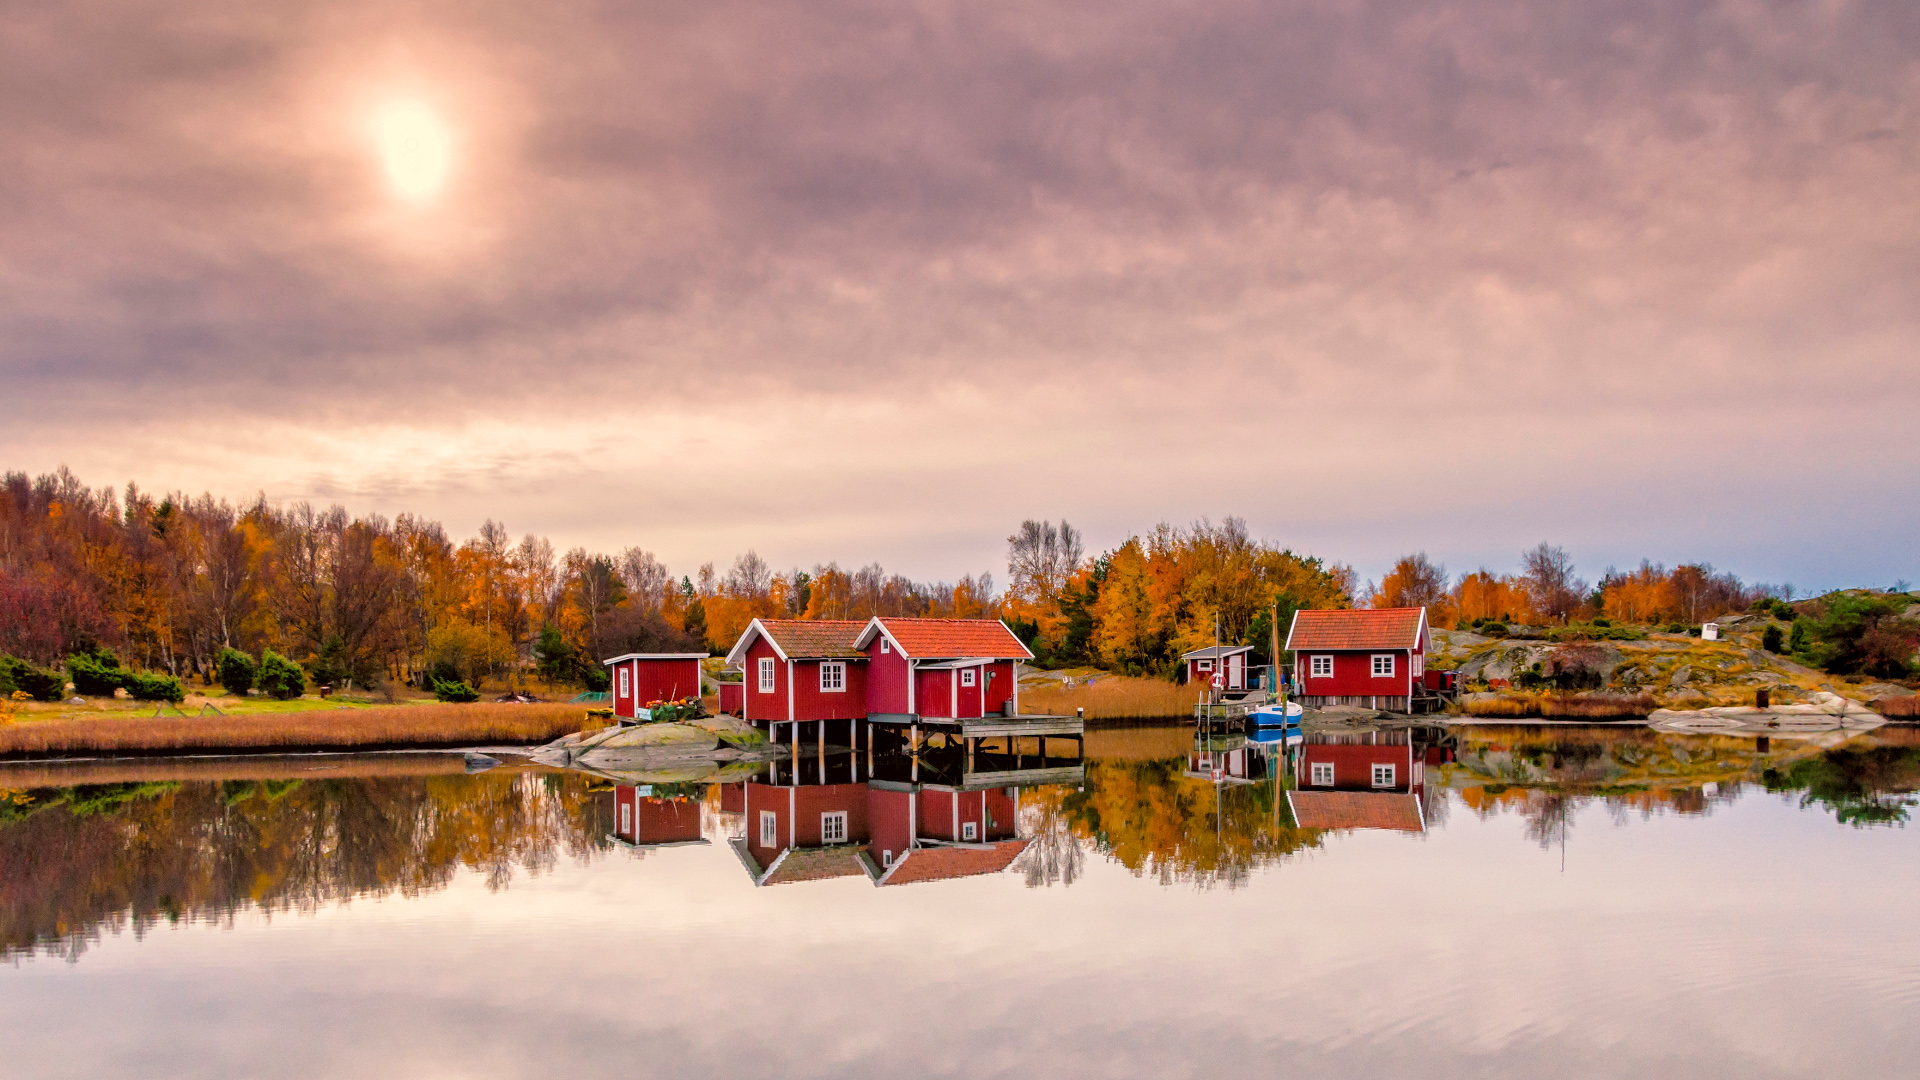 Fall Season Wallpapers Desktop Beautiful Autumn Scene Photography In Sweden Wallpapers